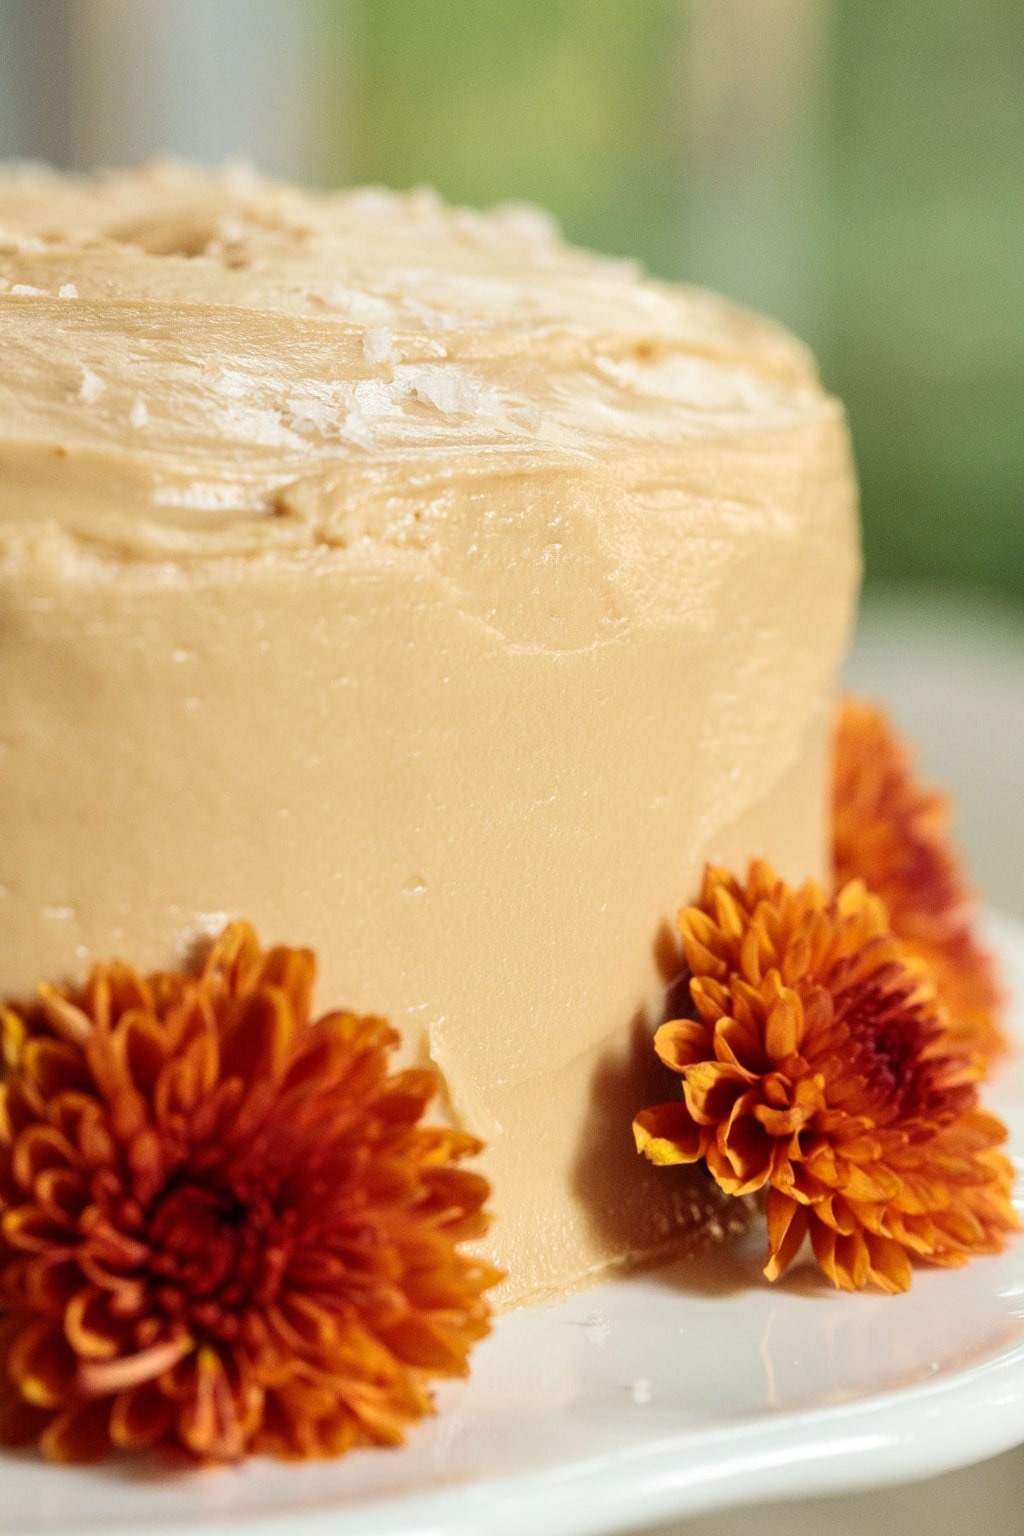 Closeup photo of the side of a One-Bowl Pumpkin Cake with Salted Caramel Icing decorated with deep orange chrysanthemums.